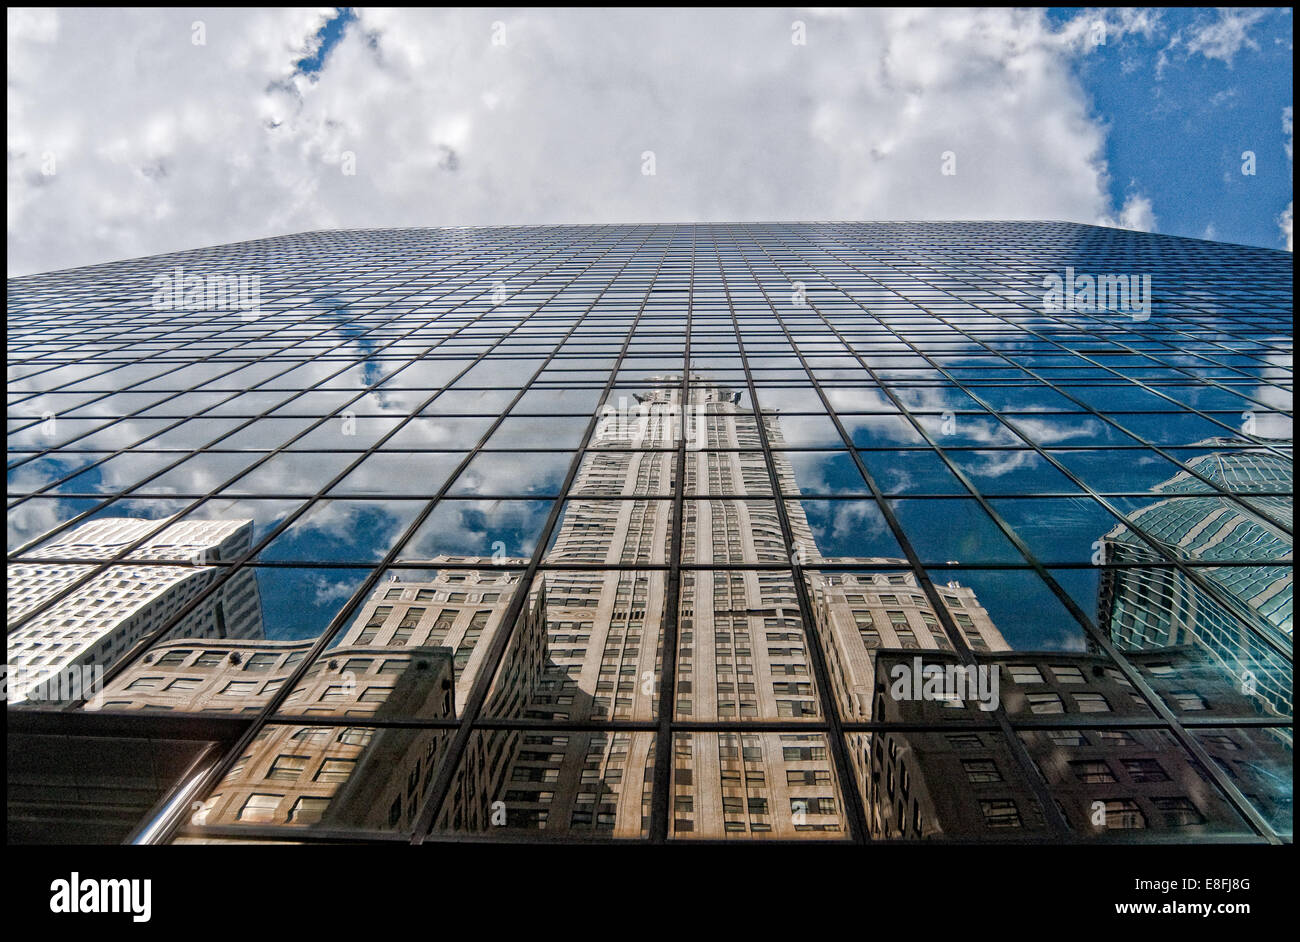 Chrysler building and skyscraper reflections in glass building, New York, america, USA - Stock Image